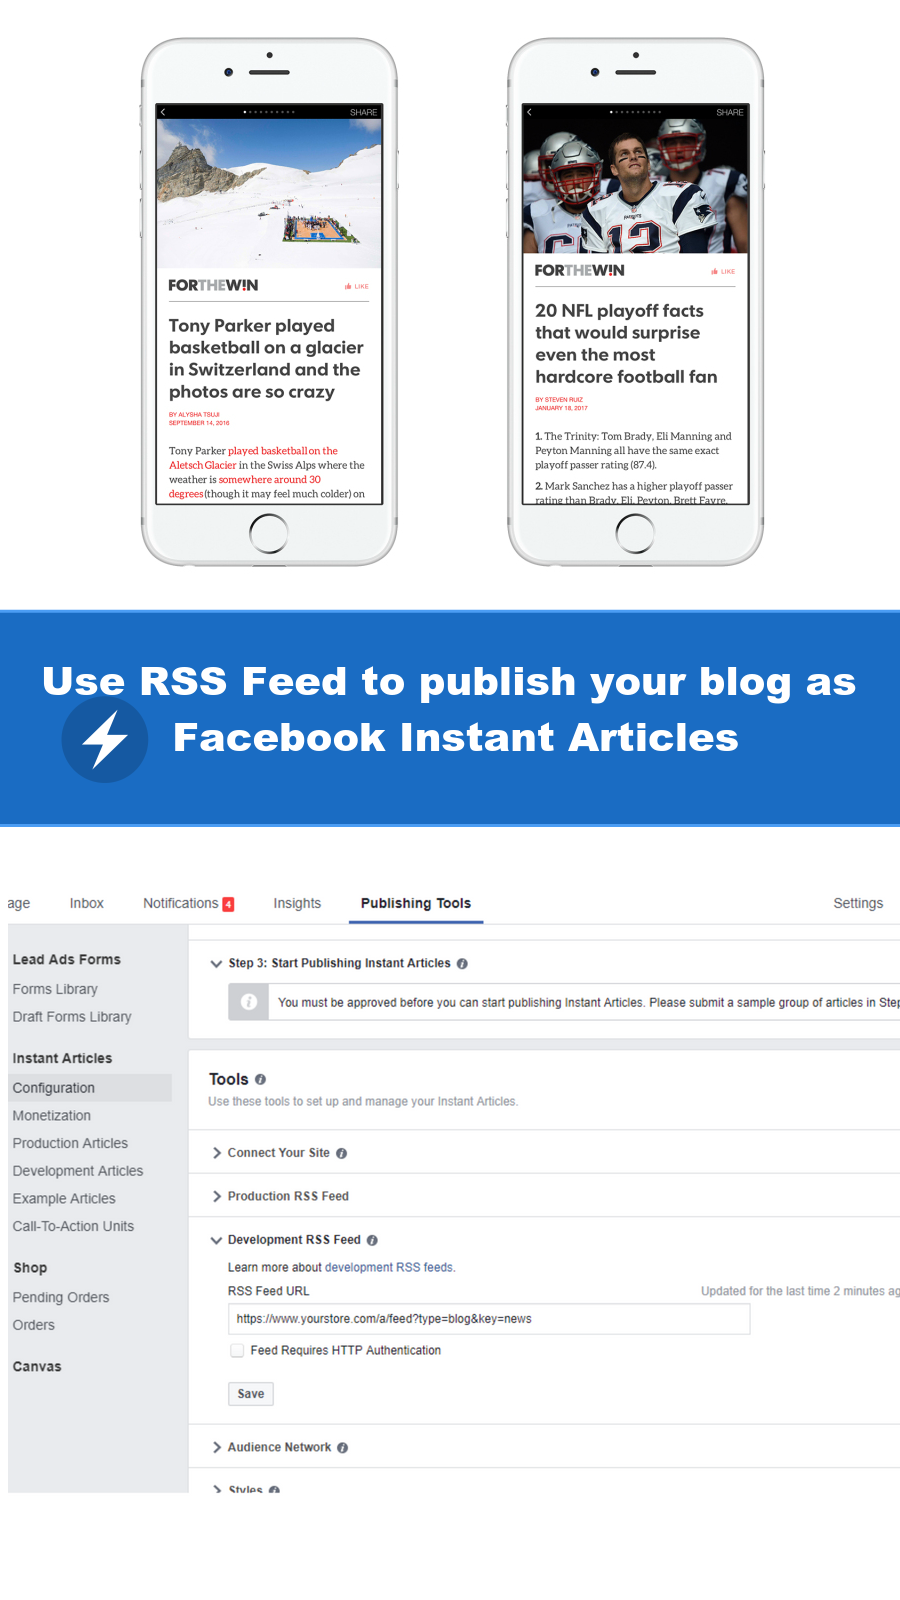 Use RSS Feed to publish your blog as Facebook Instant Articles